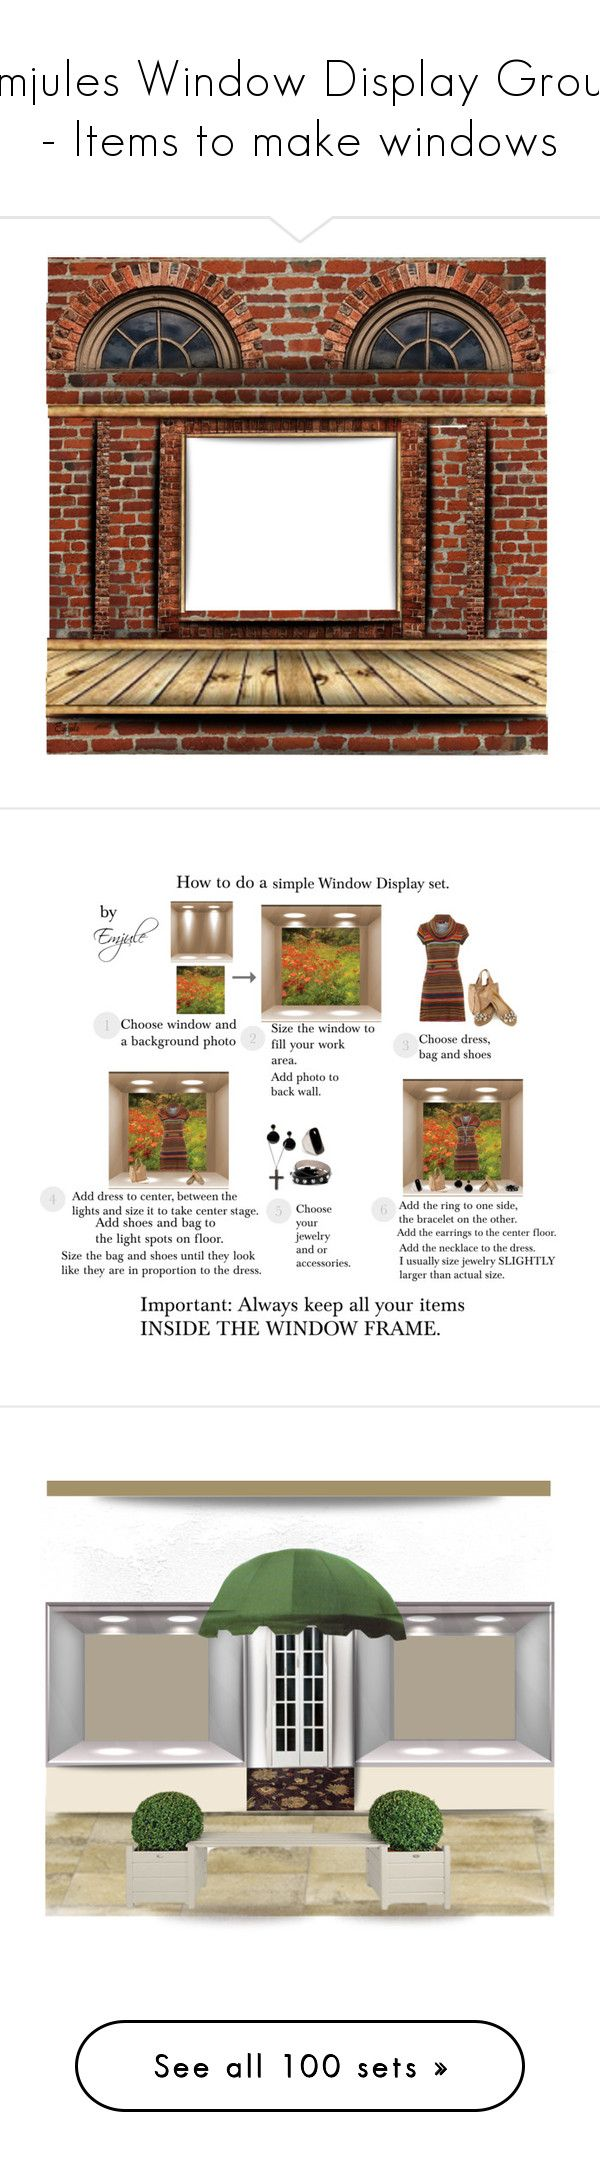 """""""Emjules Window Display Group - Items to make windows"""" by emjule ❤ liked on Polyvore featuring art, Tenki, Gap, Oasis, Alexander McQueen, So in Fashion, Emilio Pucci, Marni, home and home decor"""